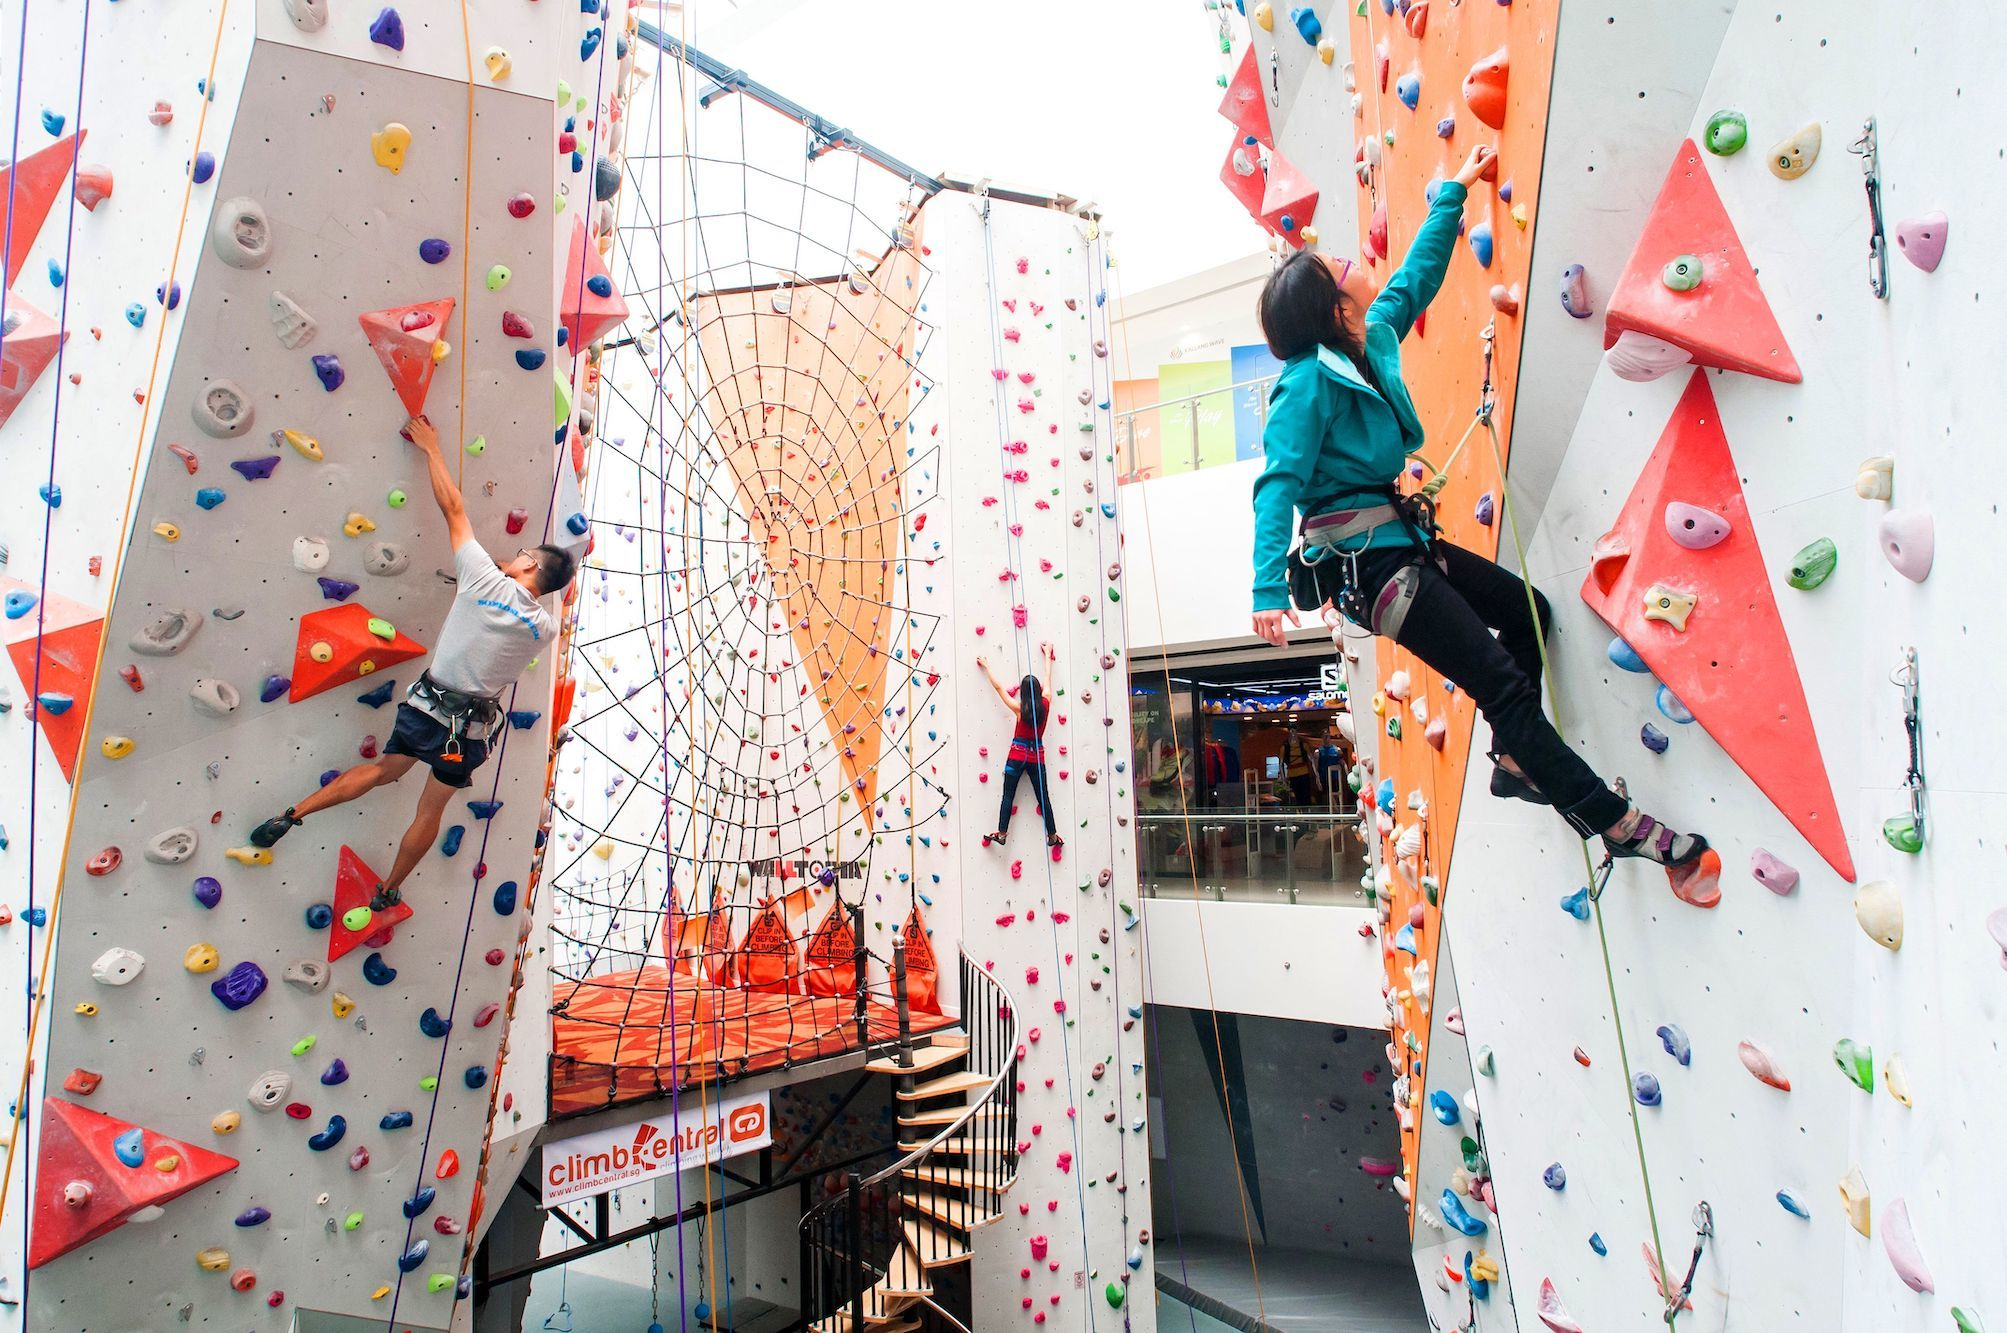 The best rock climbing and bouldering gyms in Singapore